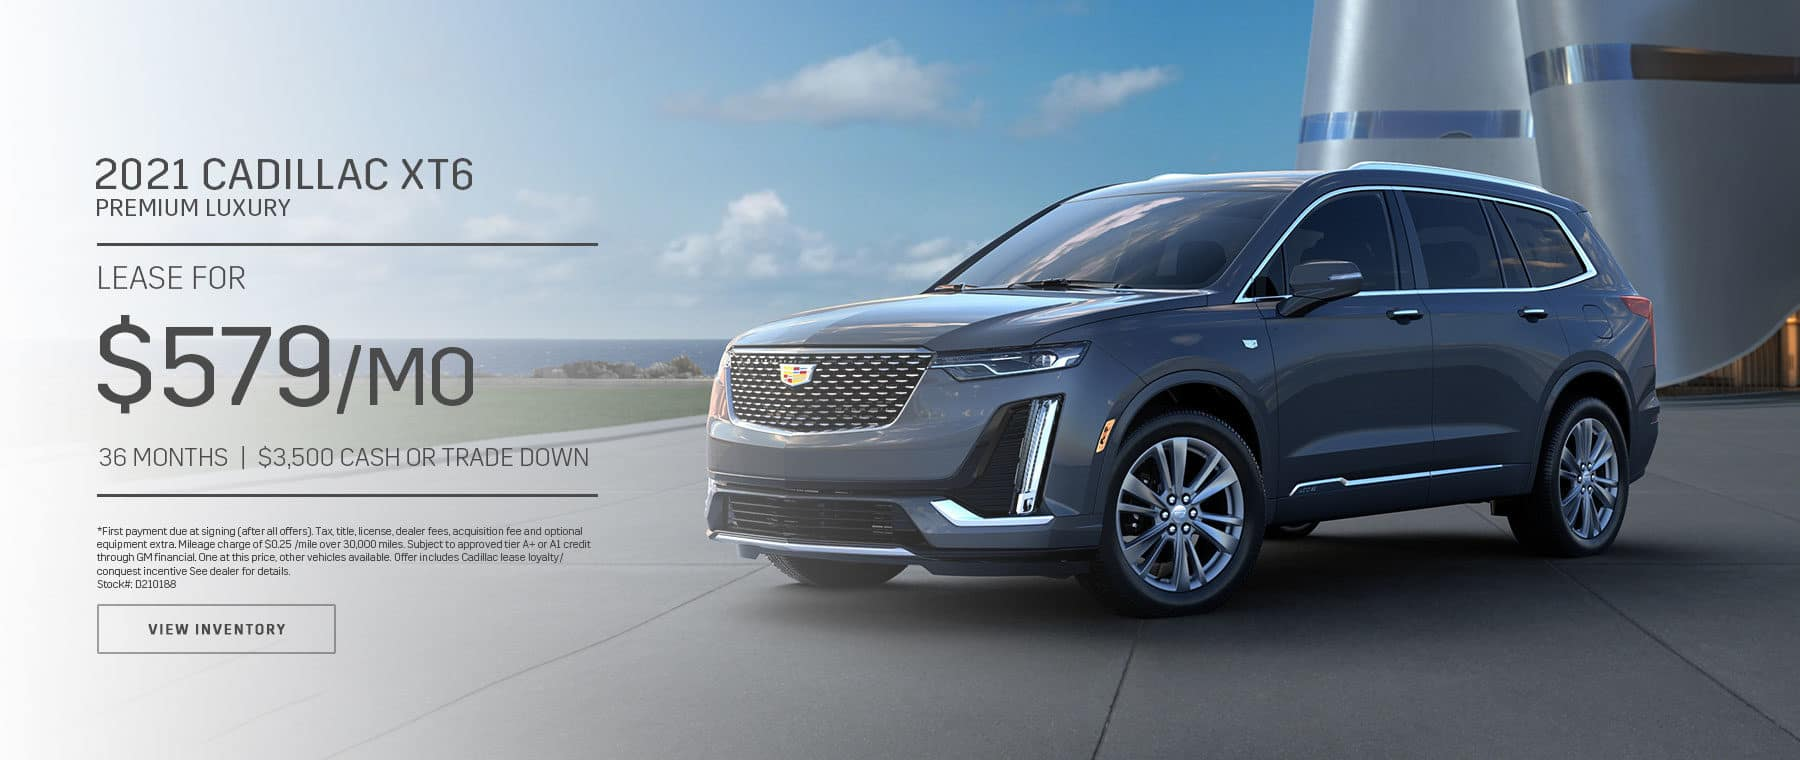 2021 Cadillac XT6 Premium Luxury $579 a month 36 Month lease $3,500 Cash or Trade Down